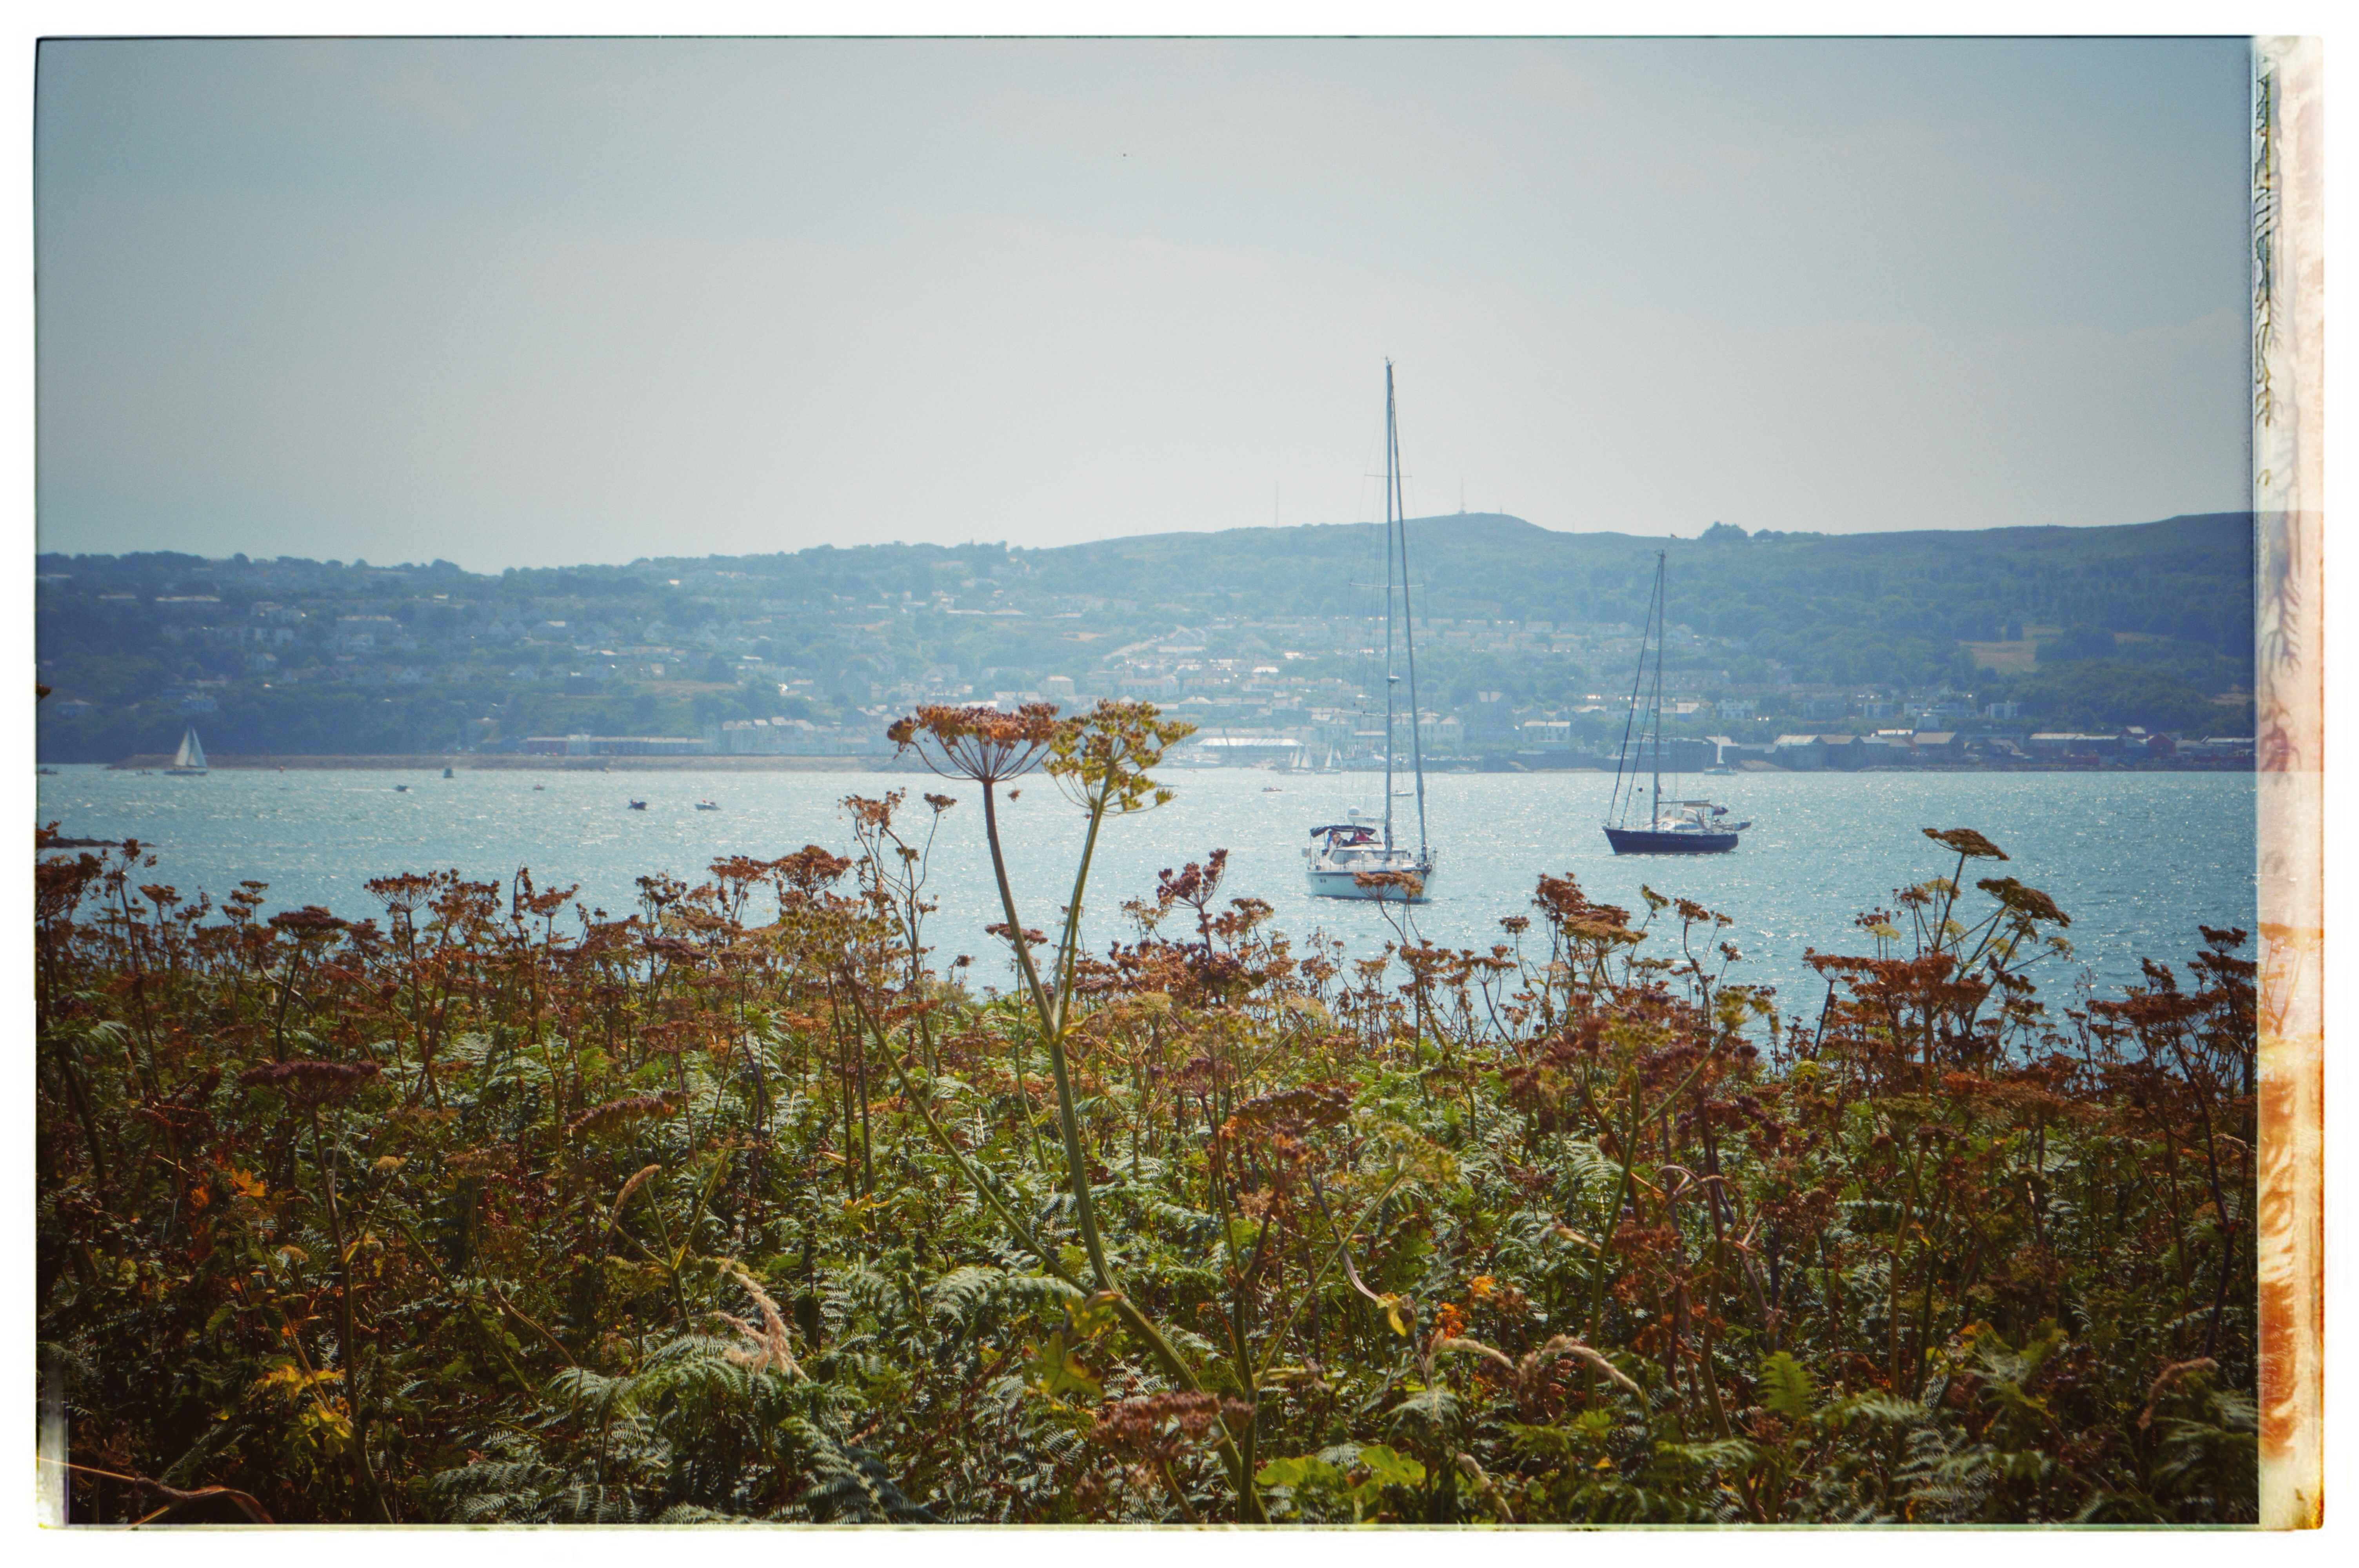 View of boats of island in Howth Ireland